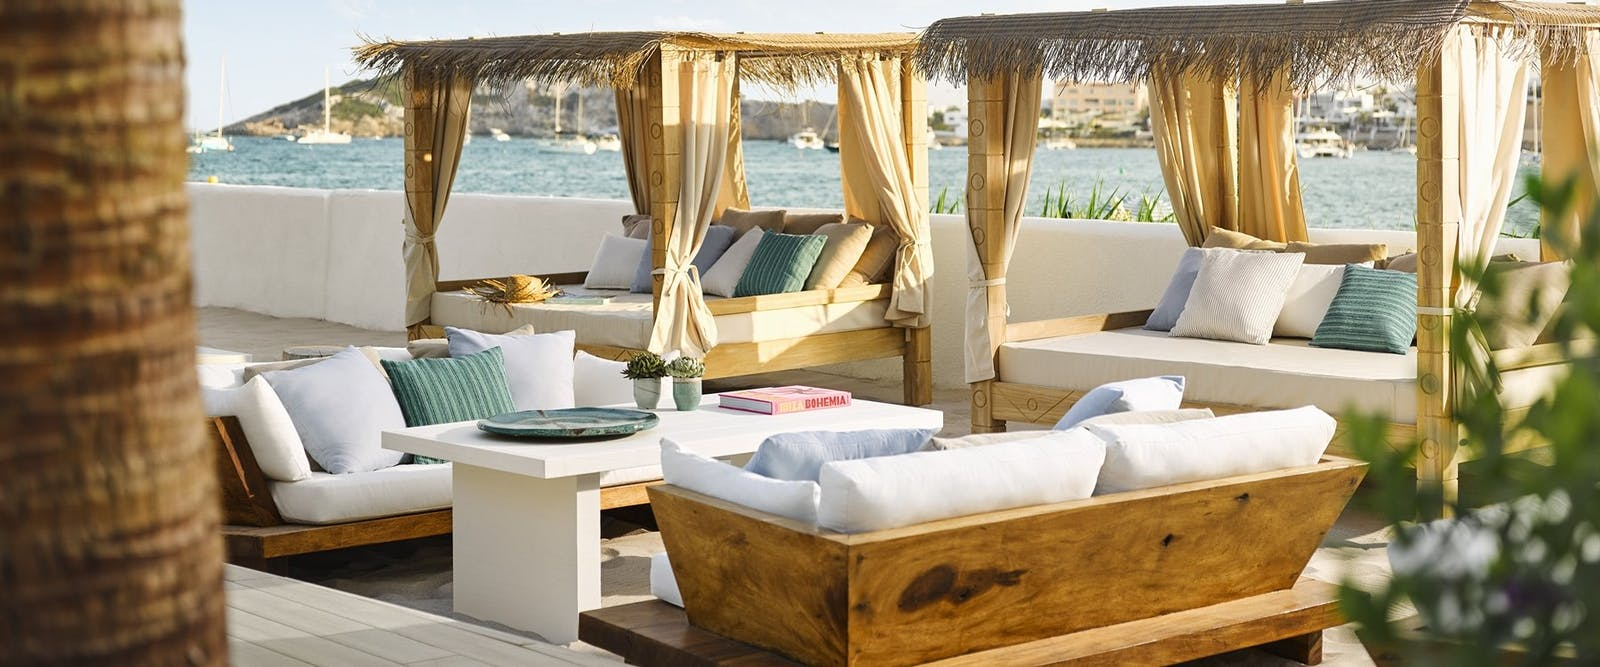 Family Pool Cabana at Nobu Hotel Ibiza Bay, Ibiza, Spain